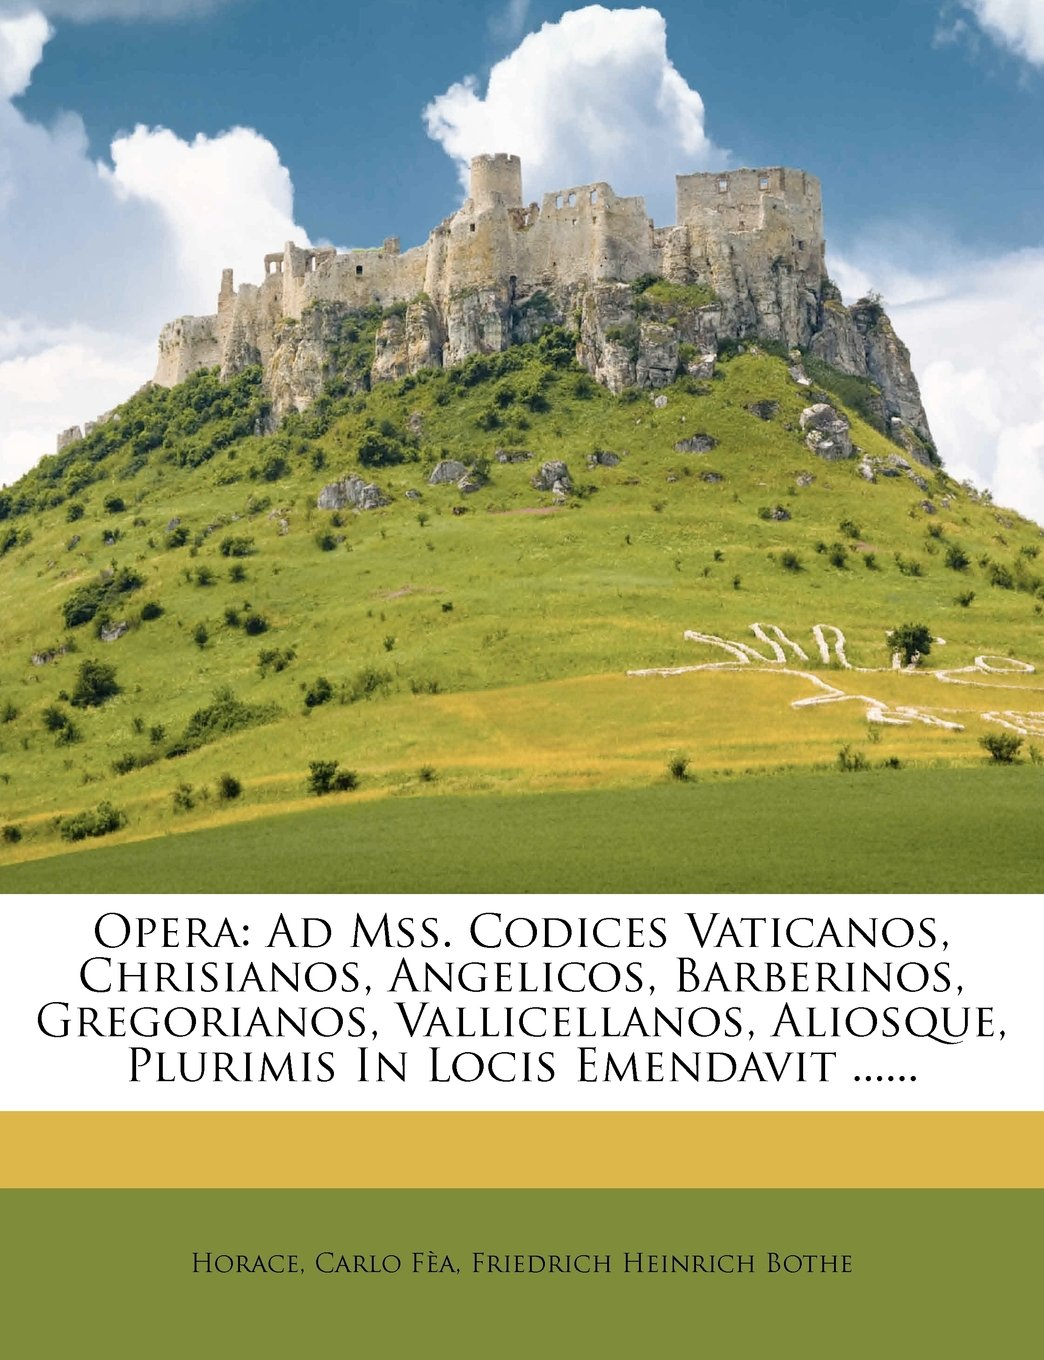 Download Opera: Ad Mss. Codices Vaticanos, Chrisianos, Angelicos, Barberinos, Gregorianos, Vallicellanos, Aliosque, Plurimis In Locis Emendavit ...... (Latin Edition) pdf epub